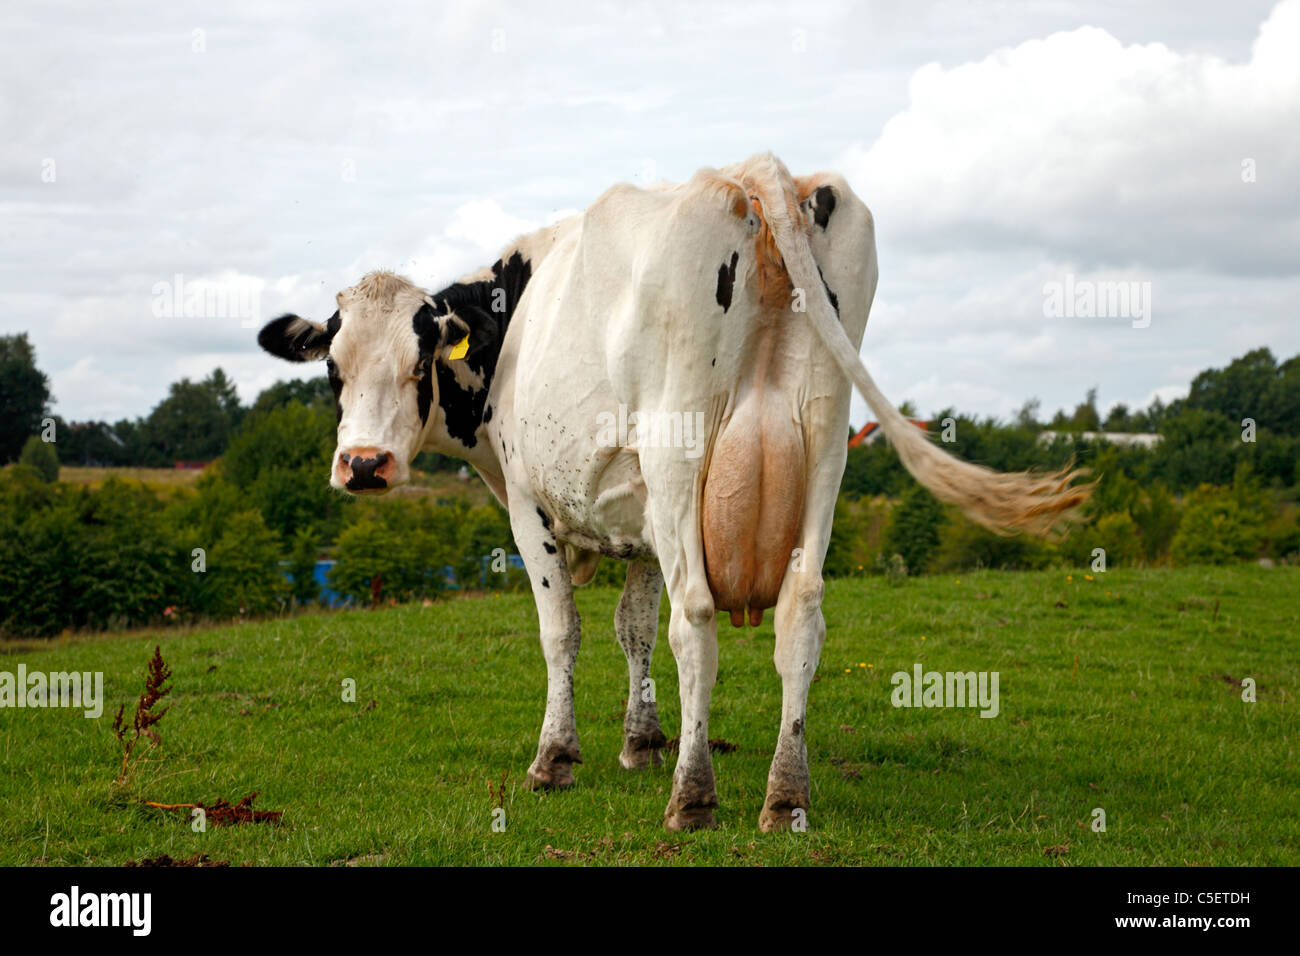 behind-of-black-and-white-cow-with-diste